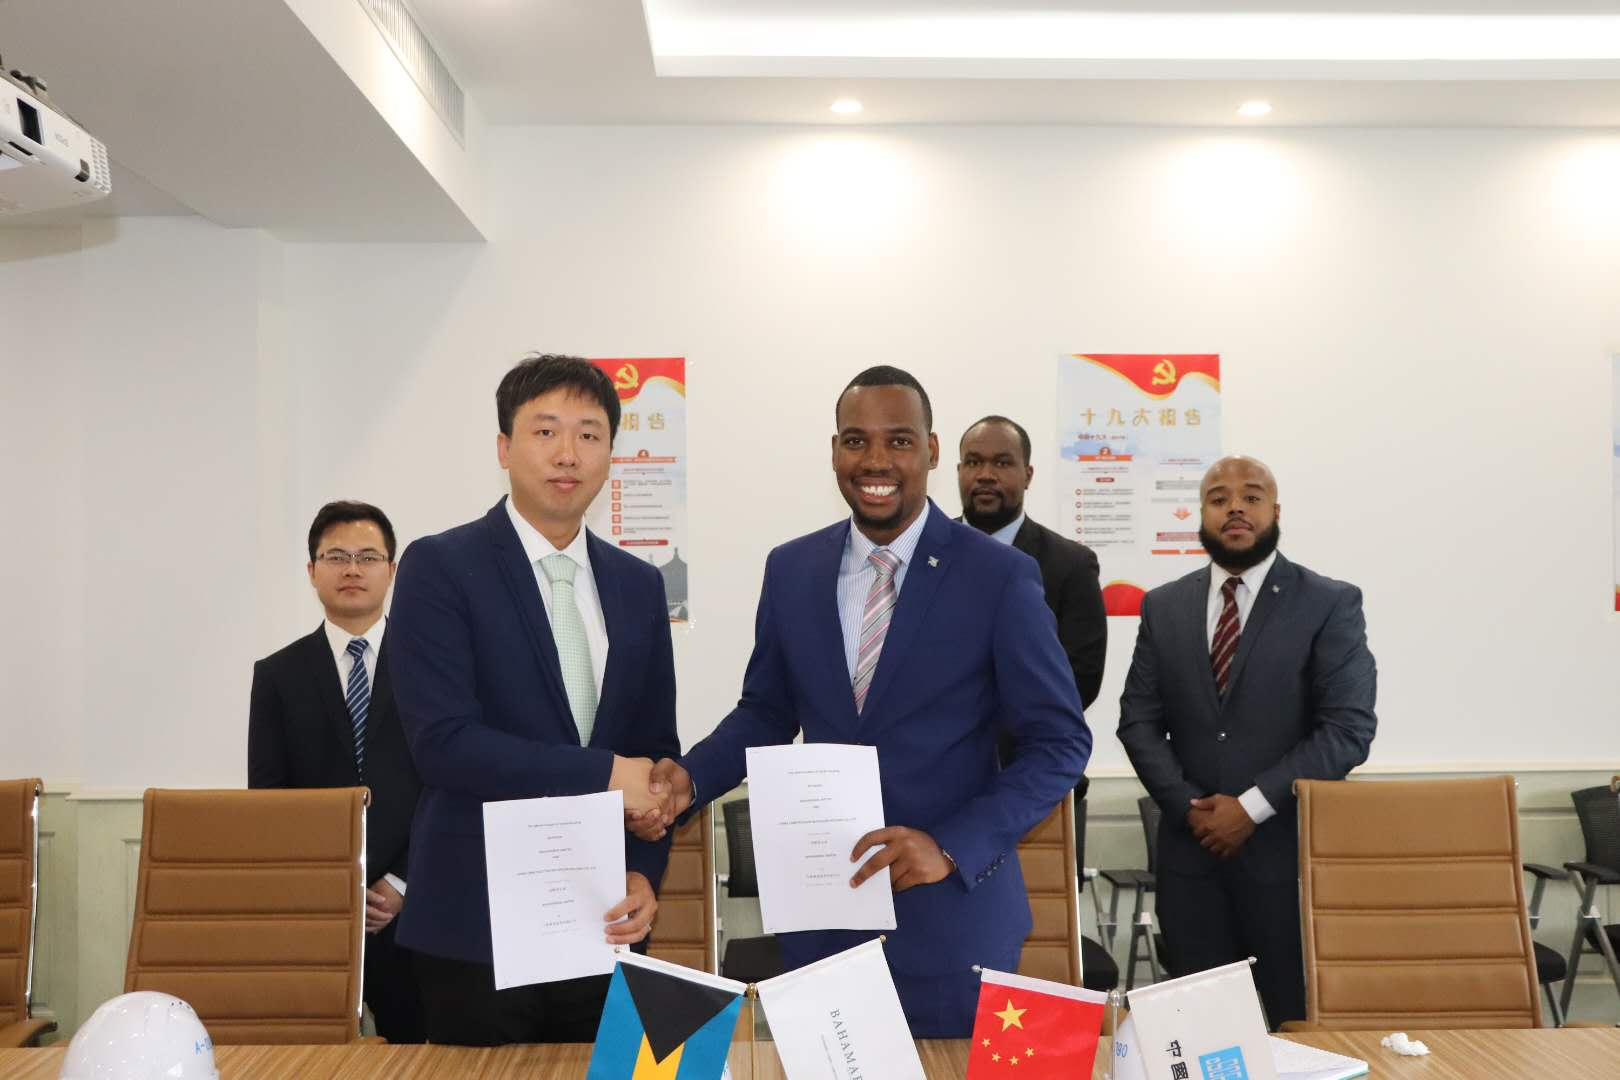 Bahamaren signs MOU with China Construction Modular Housing Co., Ltd.